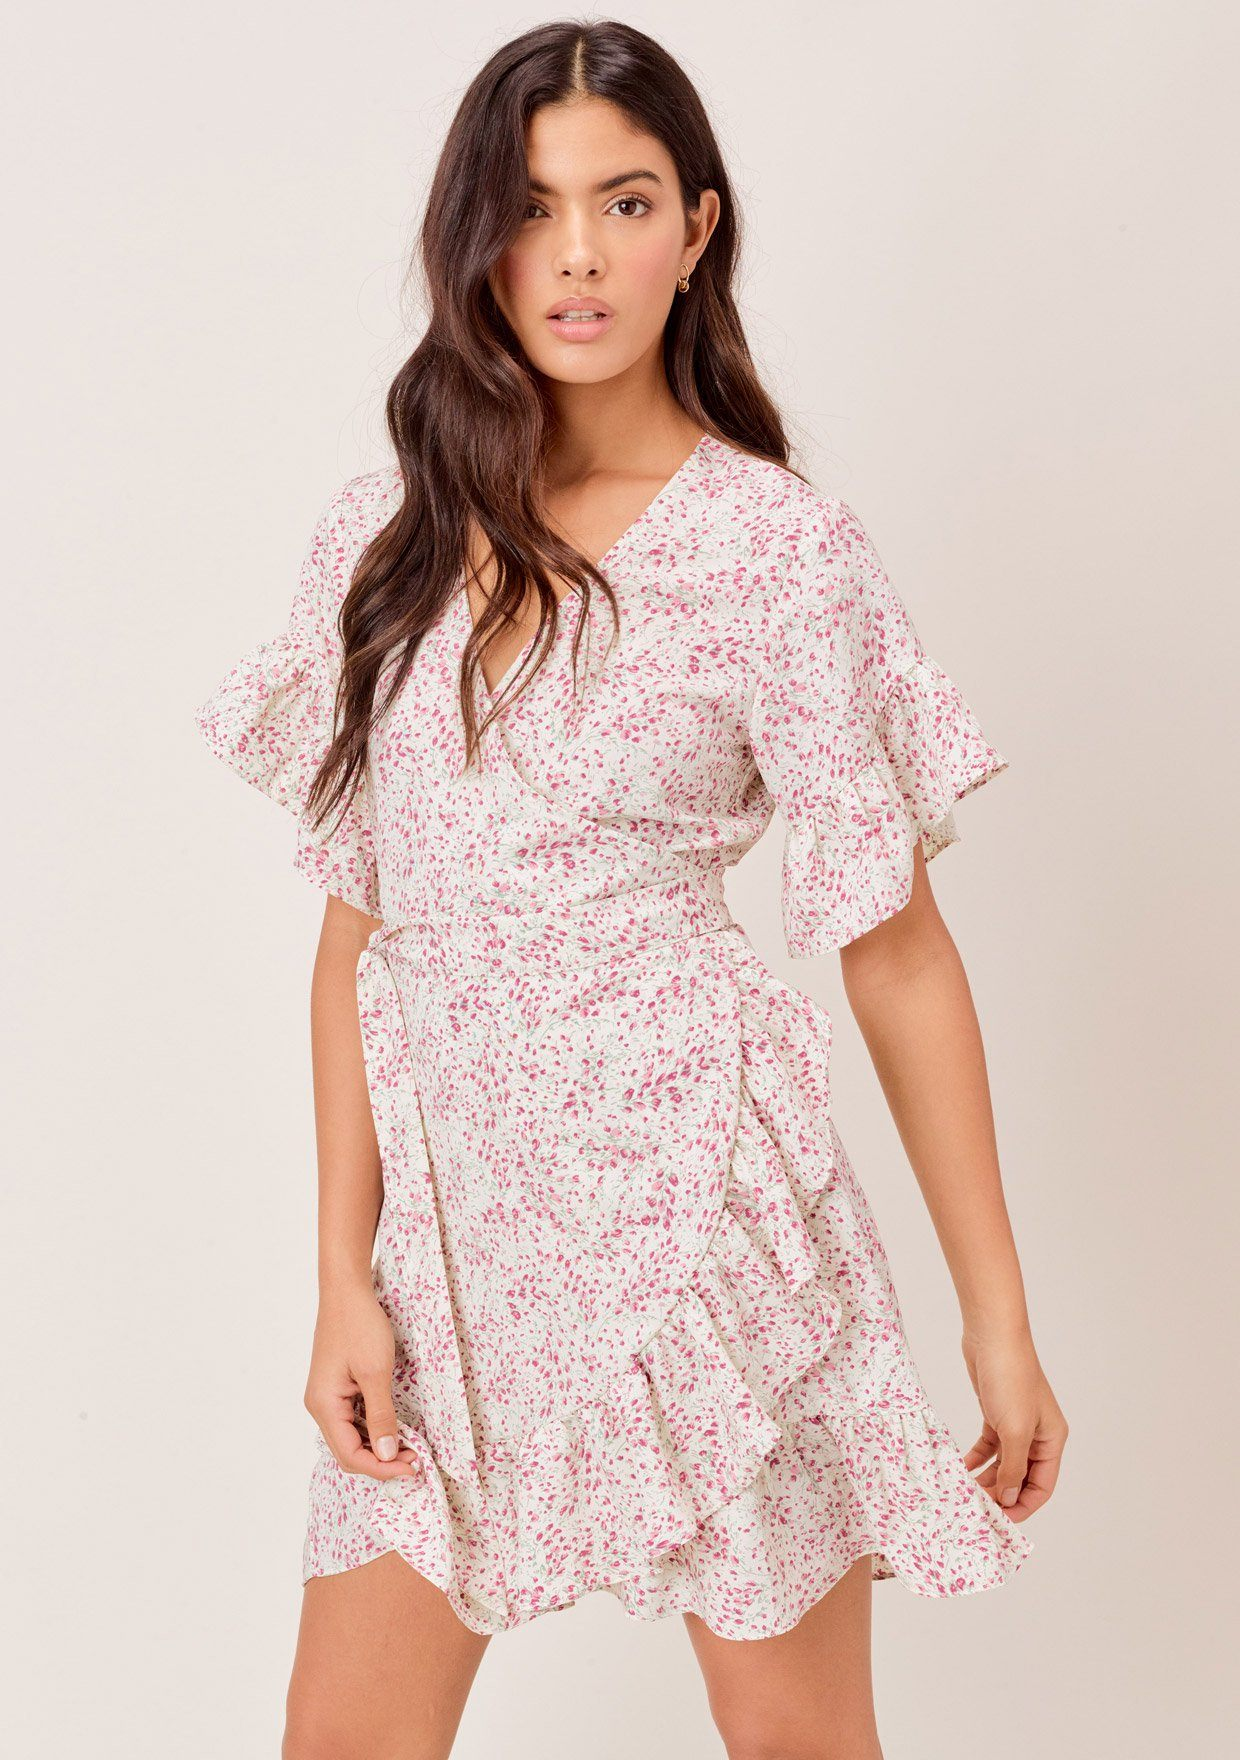 [Color: Ivory/Orchid] Lovestitch The pretty and adorable pink mini tulip floral short sleeve wrap dress featuring tiered ruffled hem and flattering ruffled butterfly sleeves.